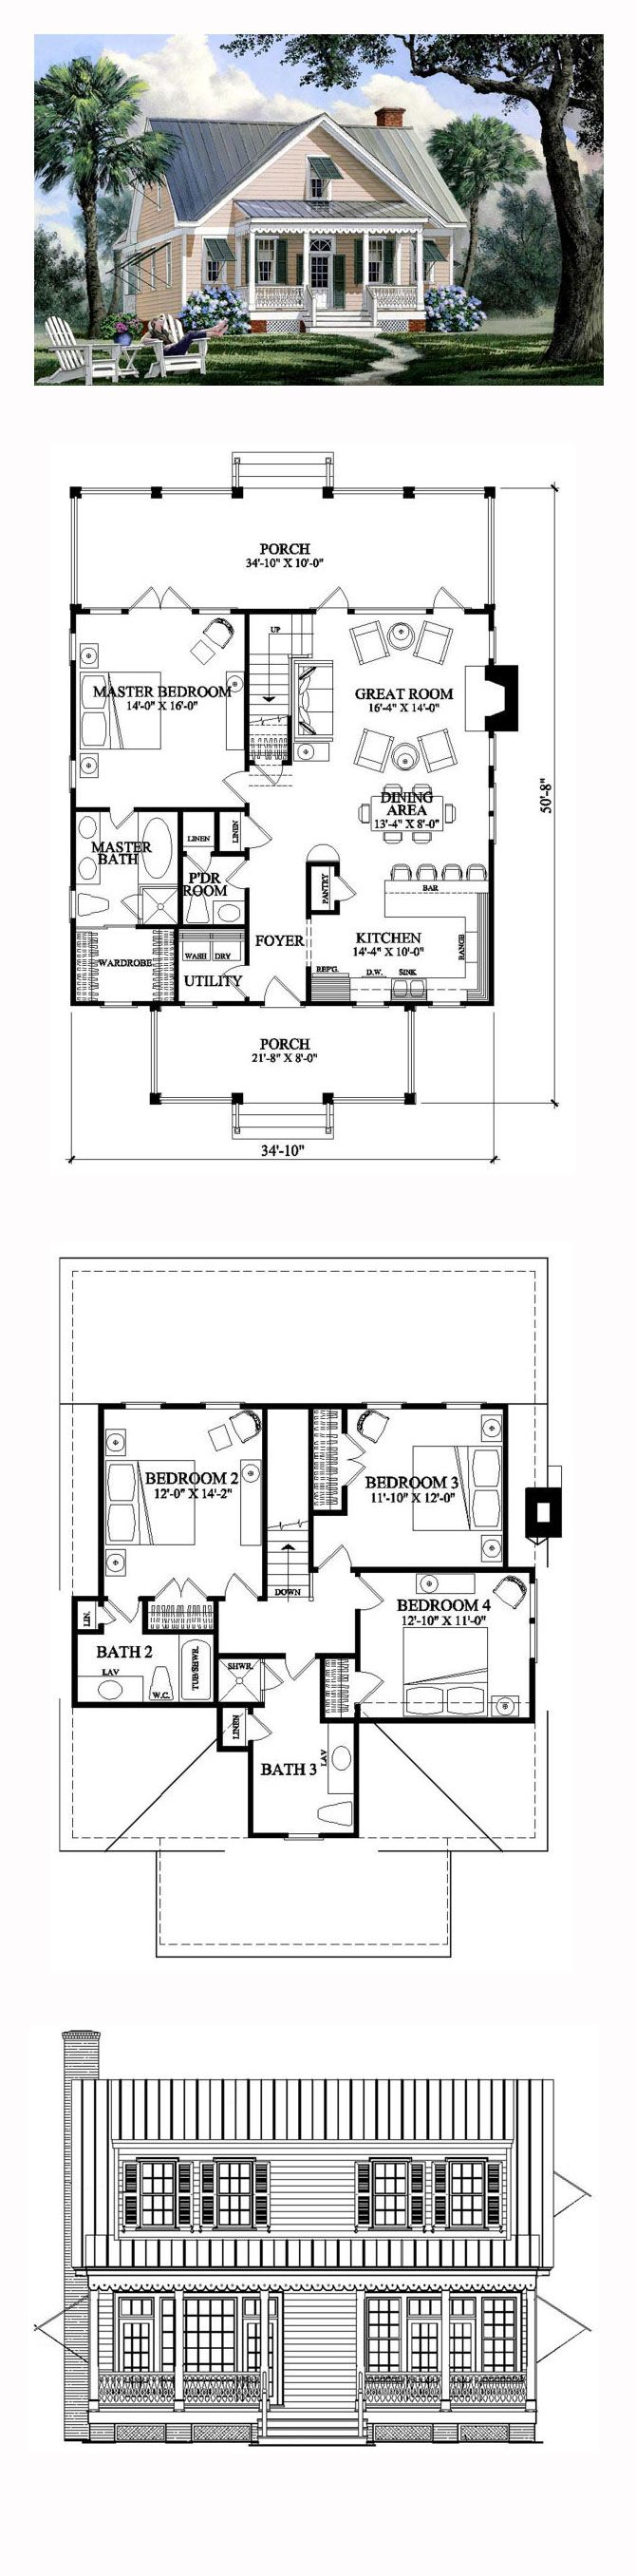 Best 25 lake house plans ideas on pinterest cottage for Lake house plans with garage